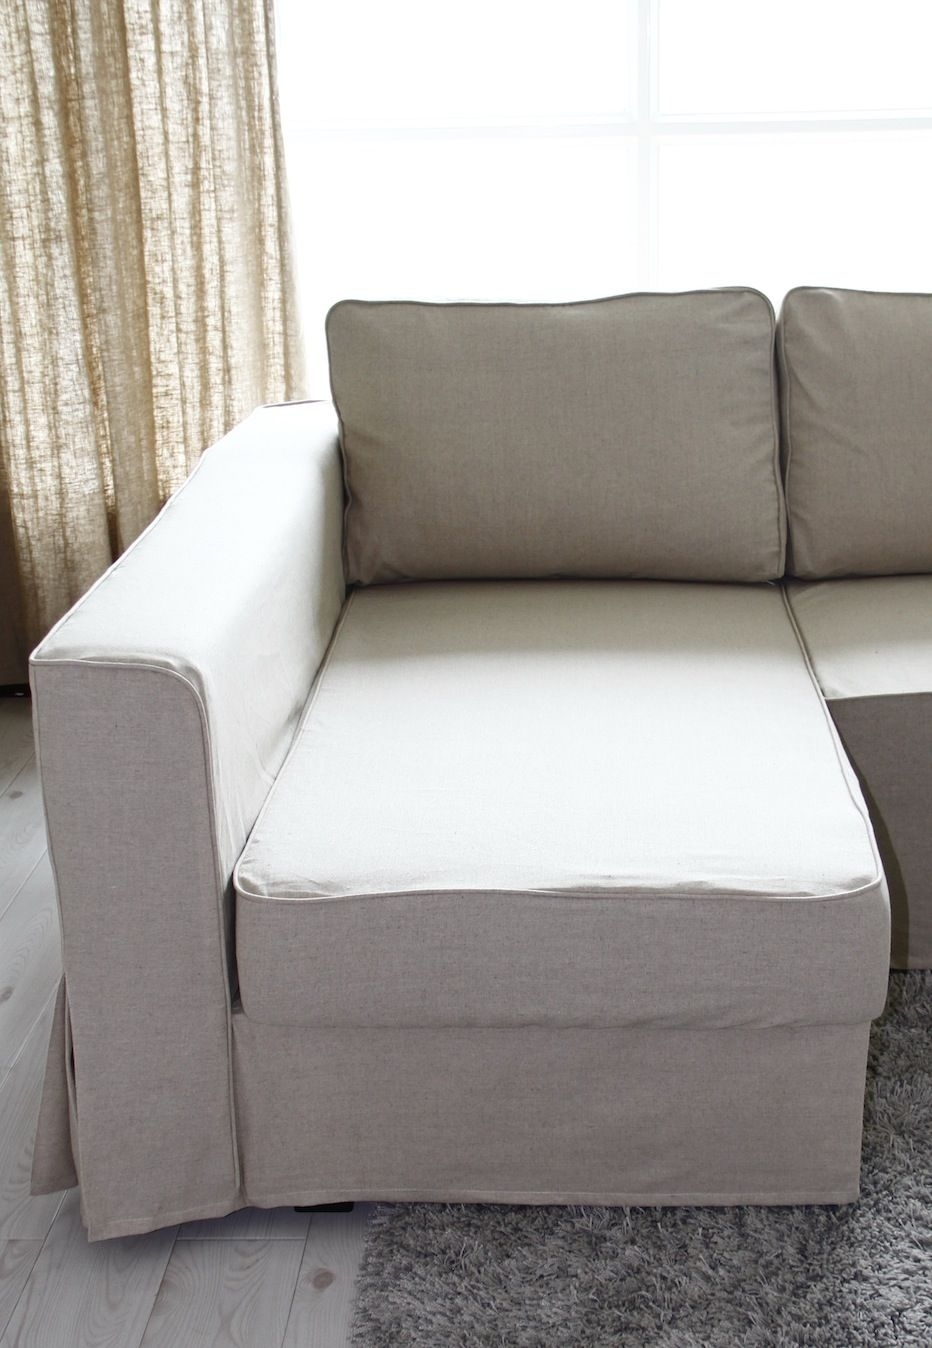 Loose Fit Linen Manstad Sofa Slipcovers Now Available | Sofa Within Manstad Sofas (View 6 of 10)